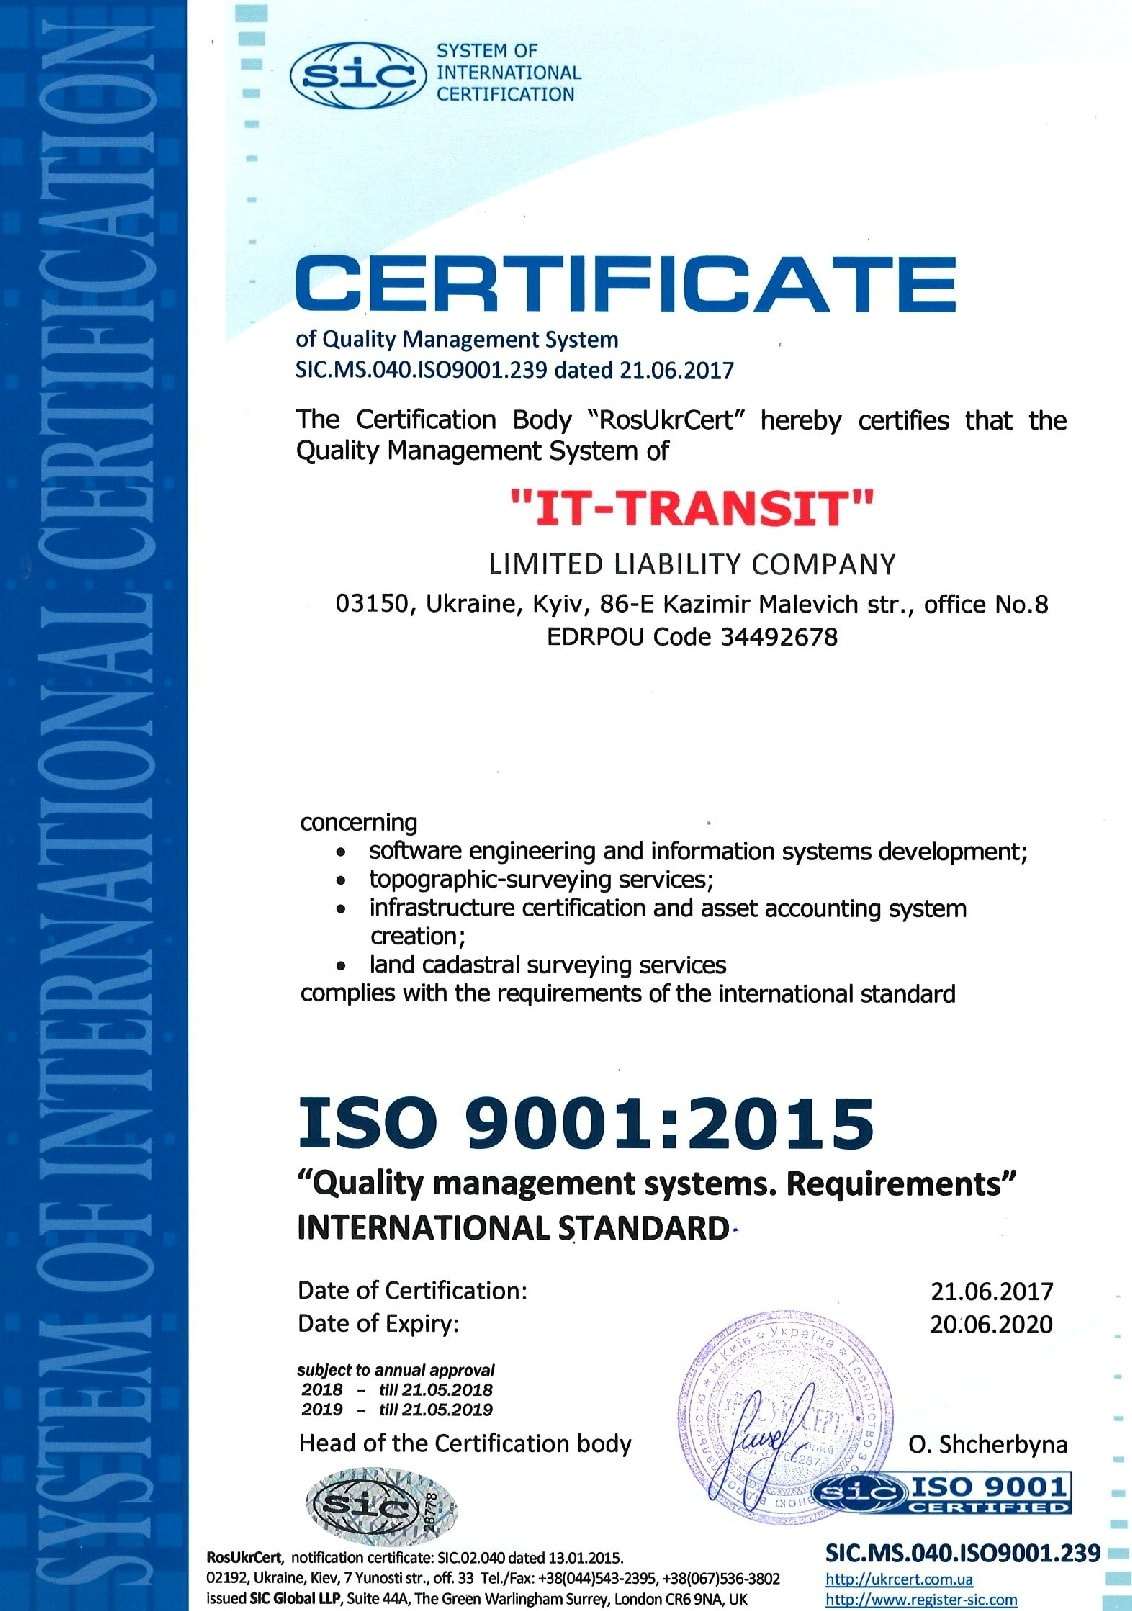 Certificate international standard of ISO 9001:2015